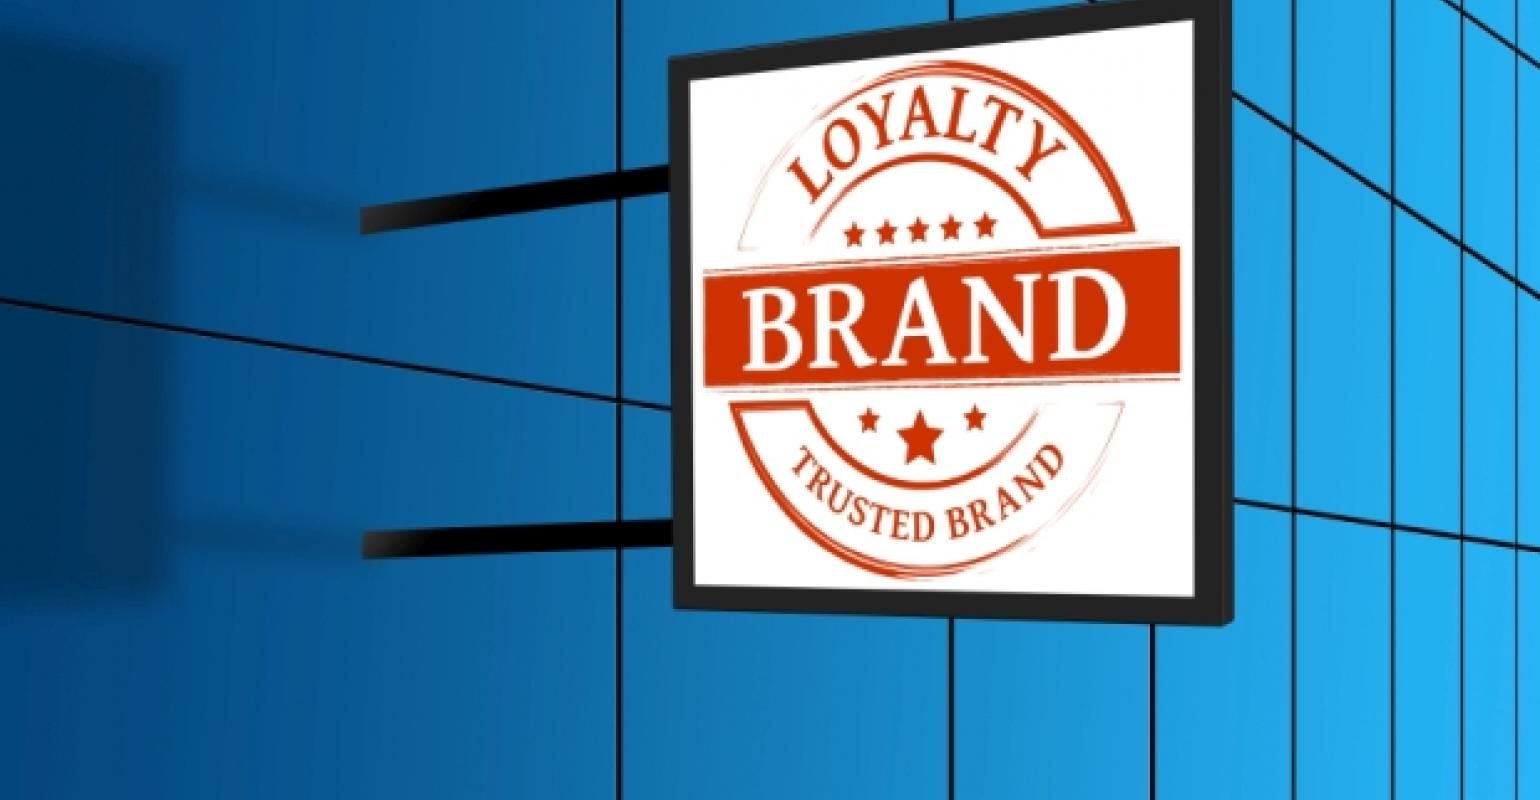 just reward are customer loyalty programs right for self storage